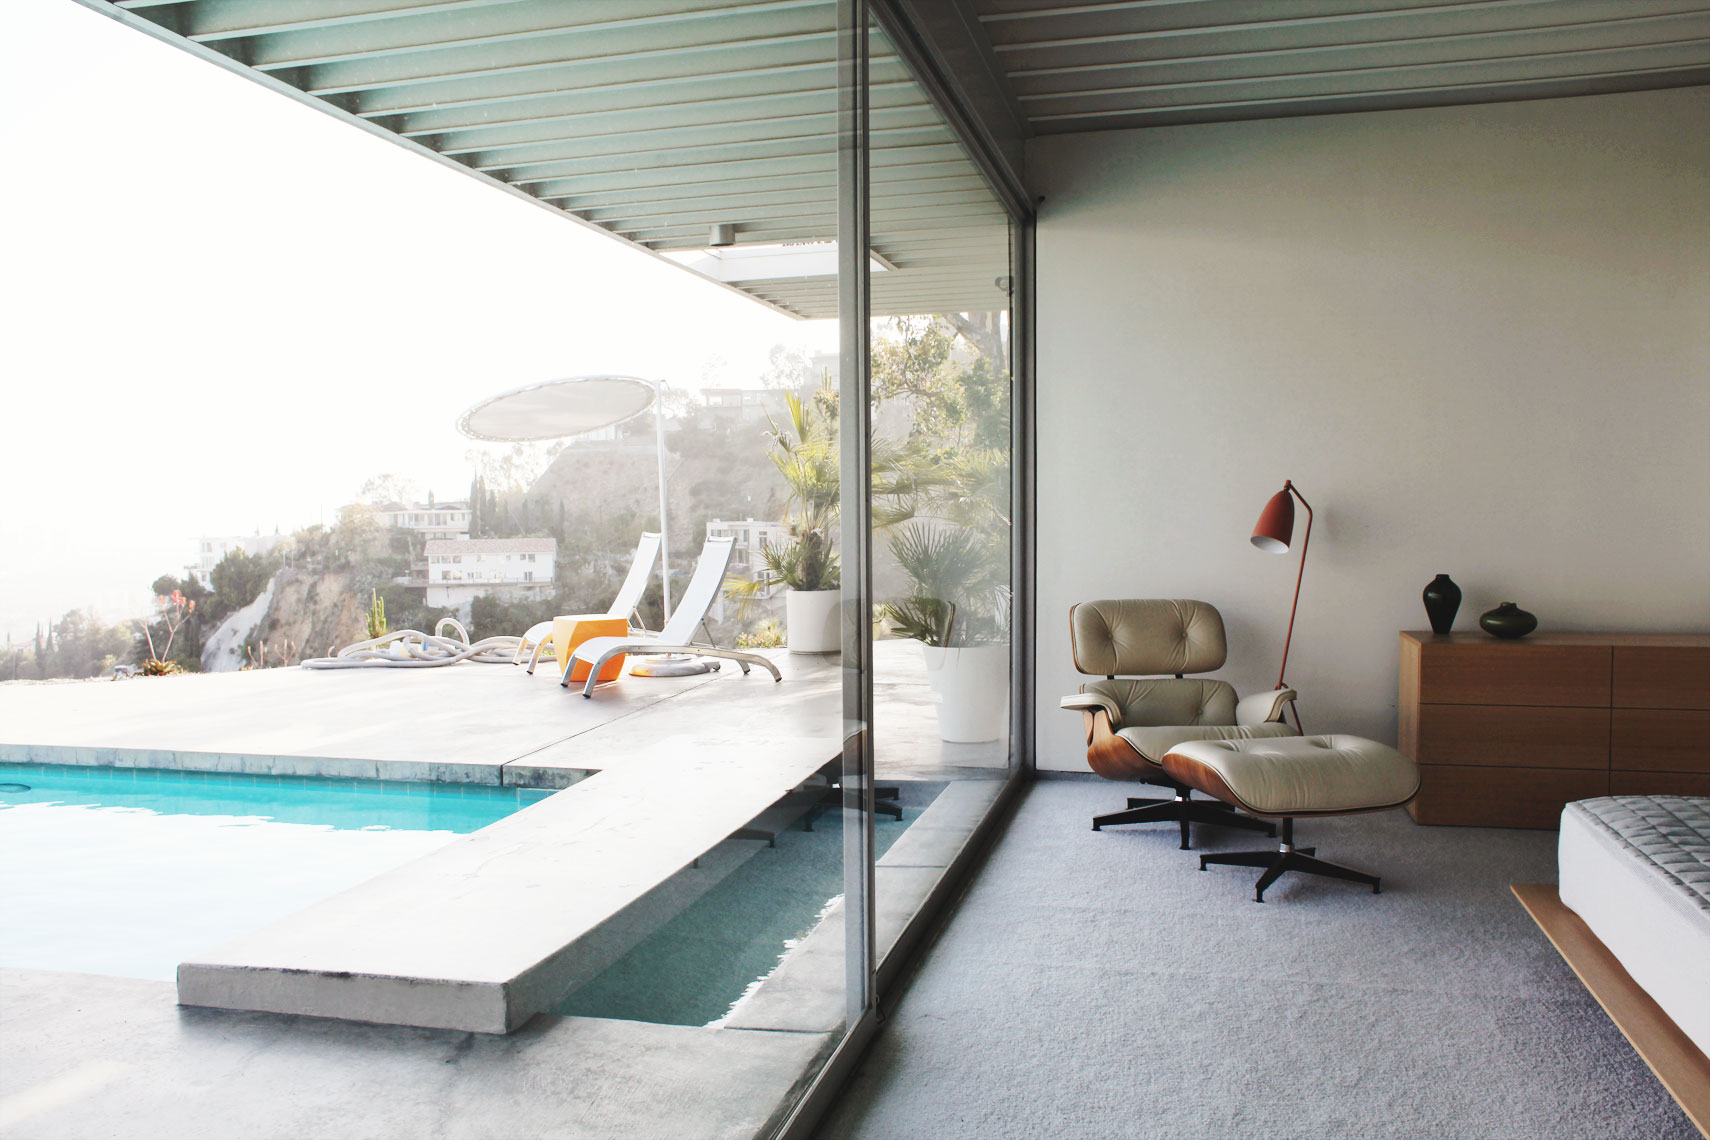 peggy-wong-photography_stories_belle-magazine_stahl-house_case-study-house-22_pierre-koenig_los-angeles_7989